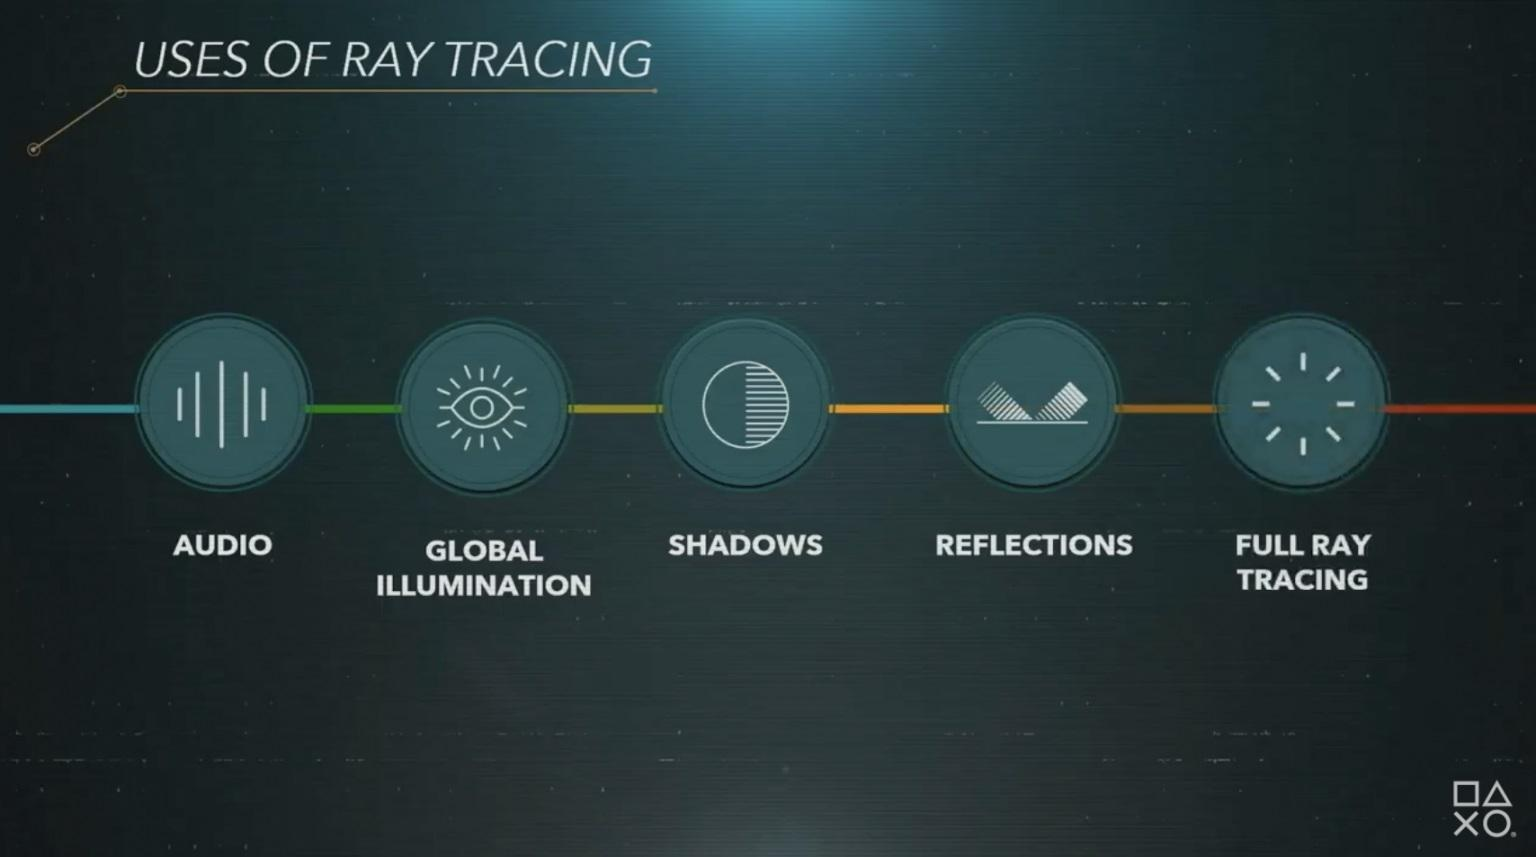 https://www.omgpu.com/wp-content/uploads/2020/03/Sony-Playstation-5-PS5-ray-tracing.jpg